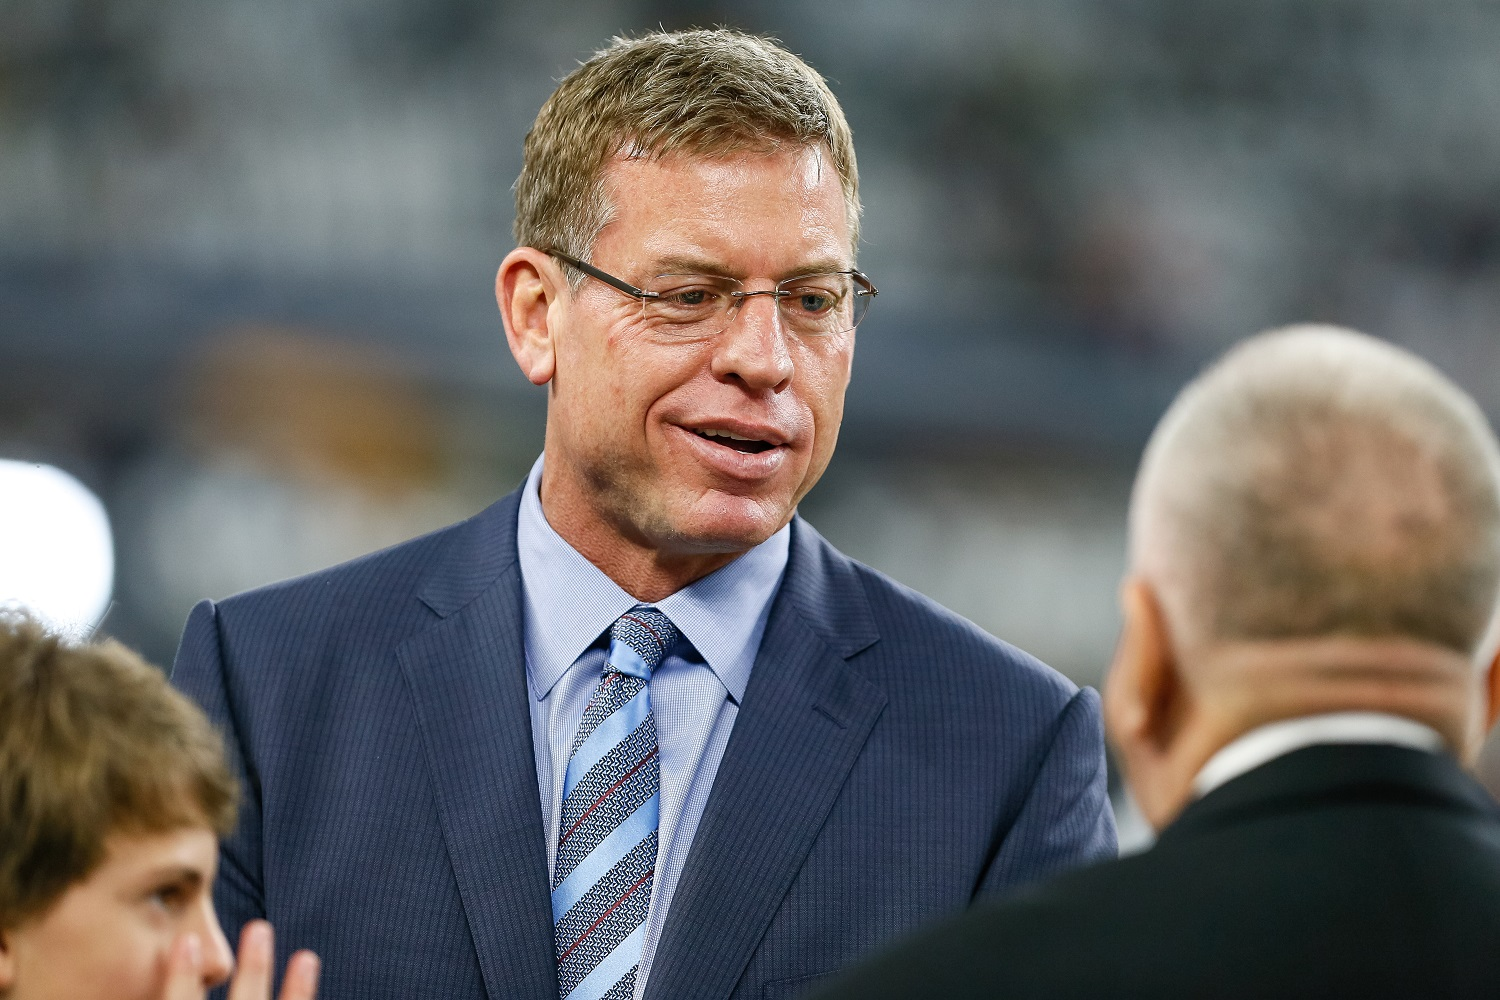 Troy Aikman visits the sidelines prior to the NFC Divisional Playoff game between the Dallas Cowboys and Green Bay Packers on Jan. 15, 2017.